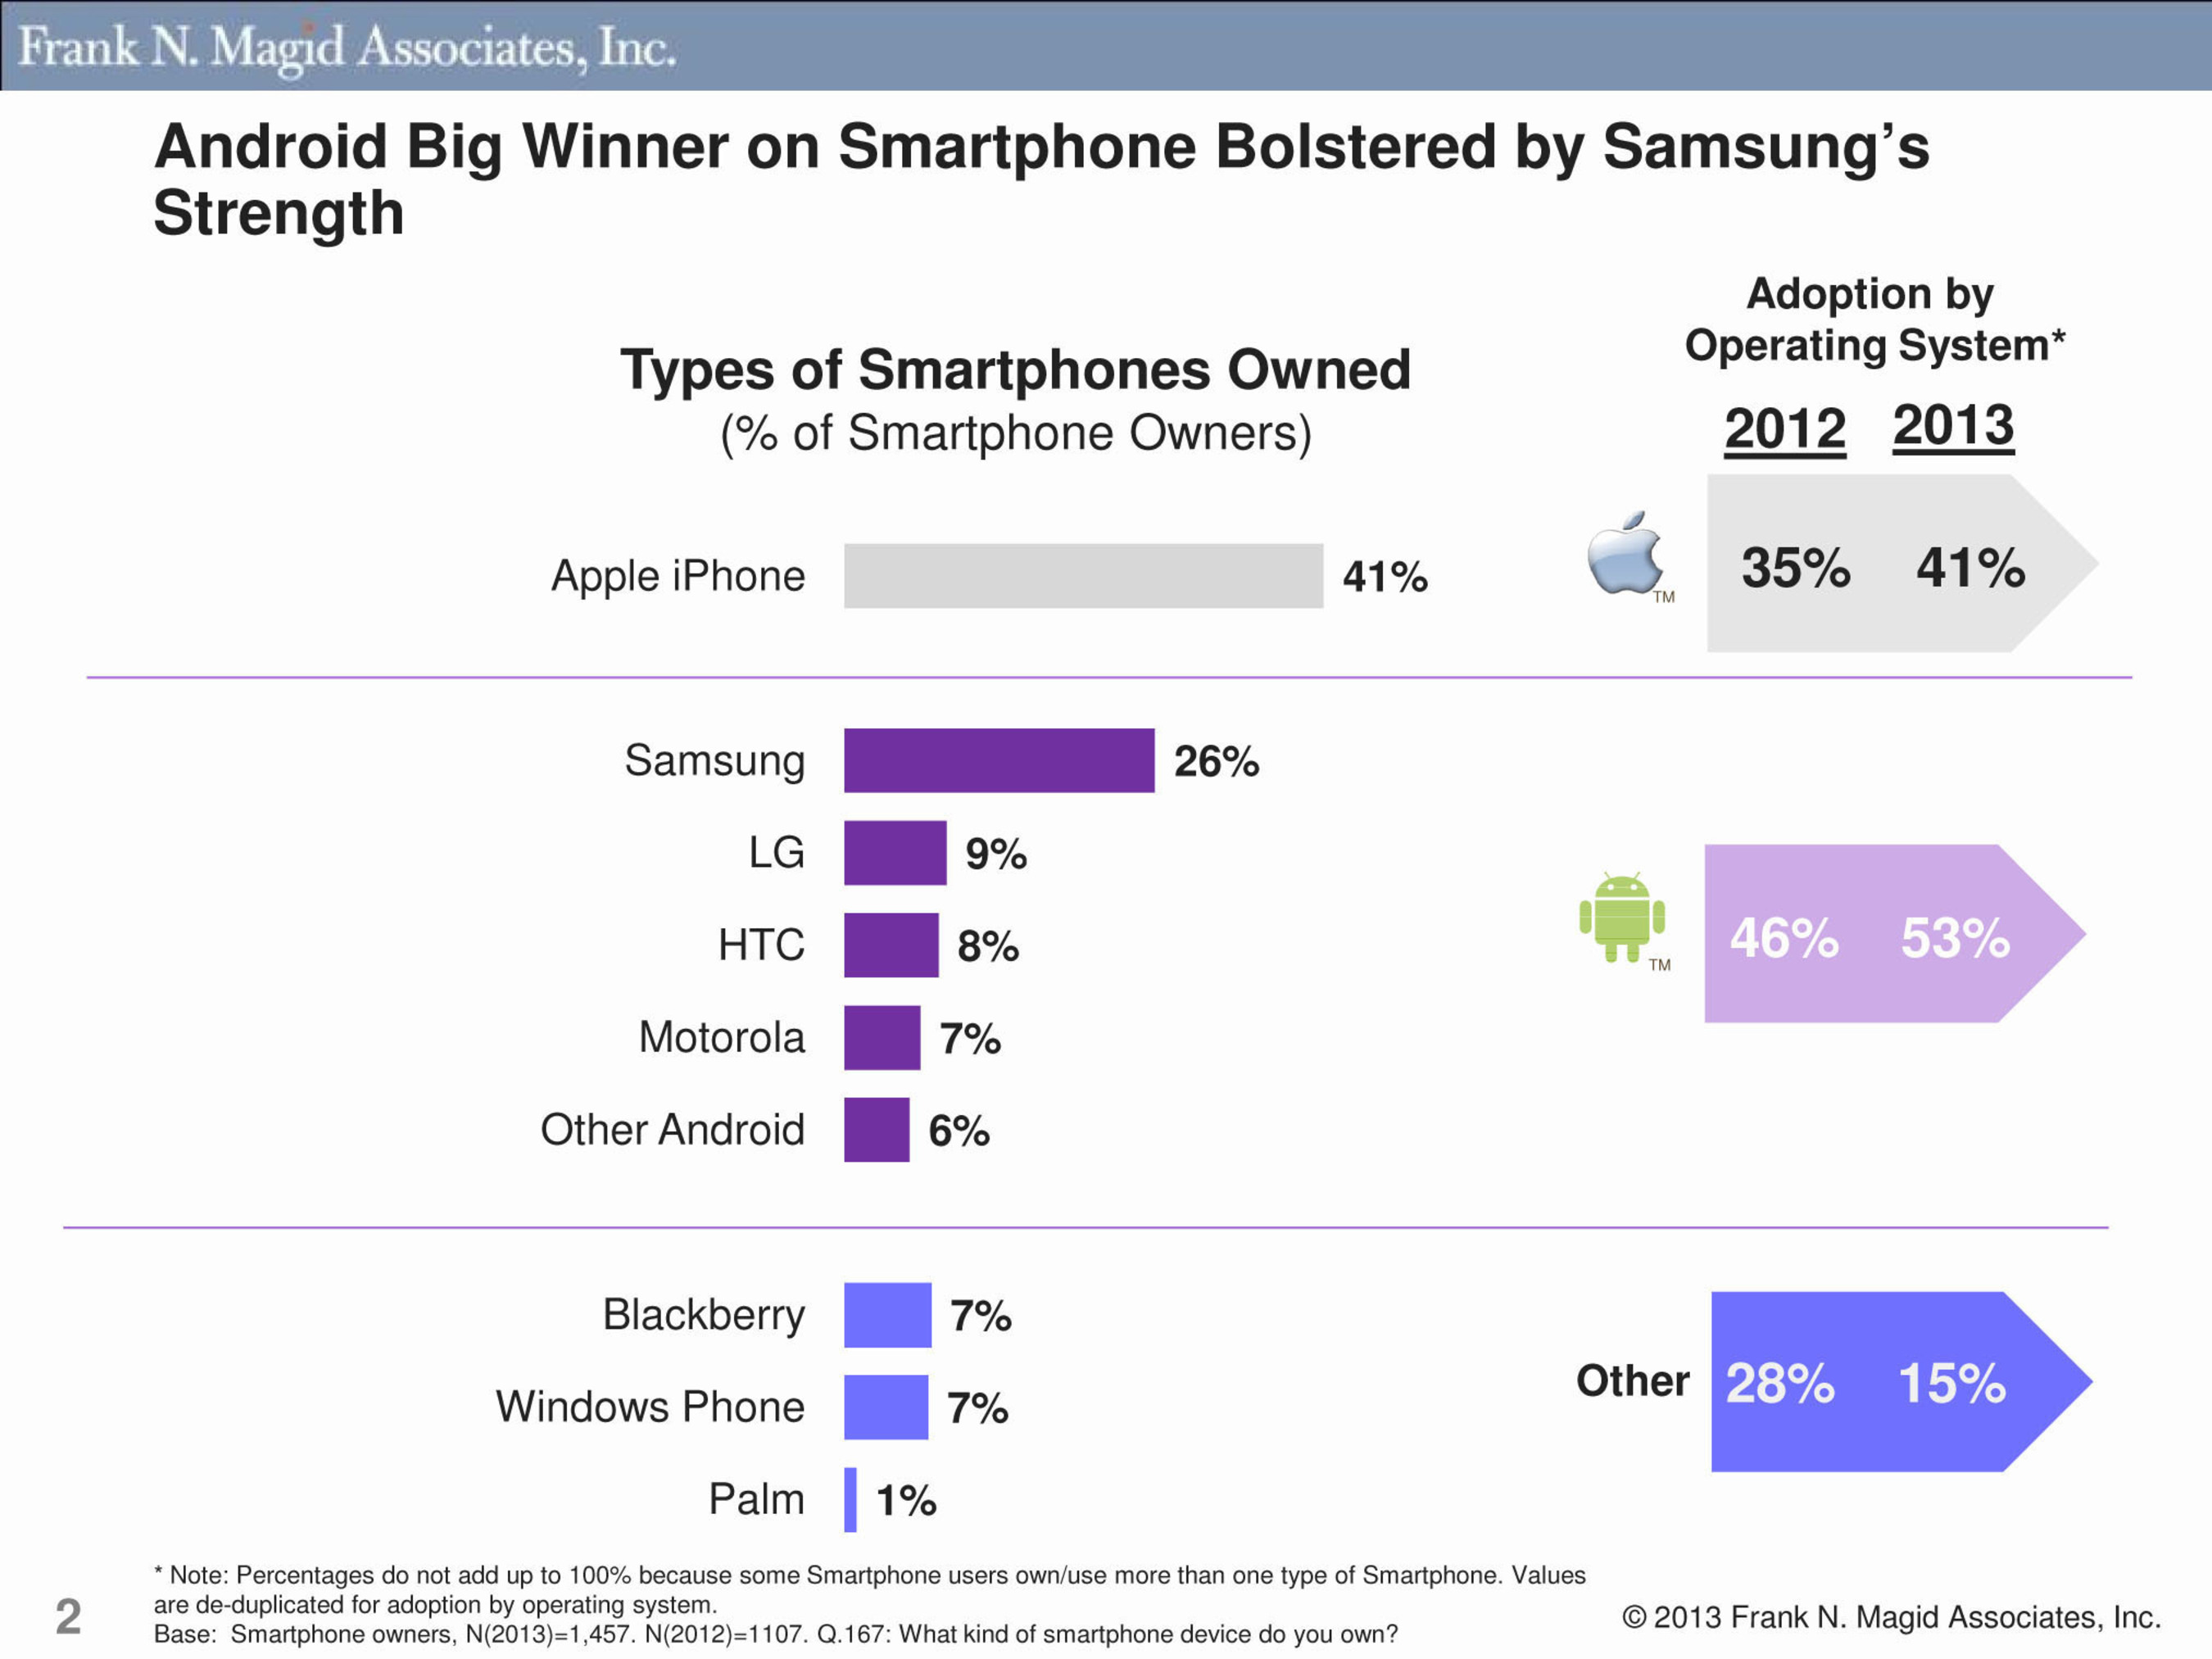 Android Big Winner on Smartphone Bolstered by Samsung's Strength.  (PRNewsFoto/Frank N. Magid Associates)